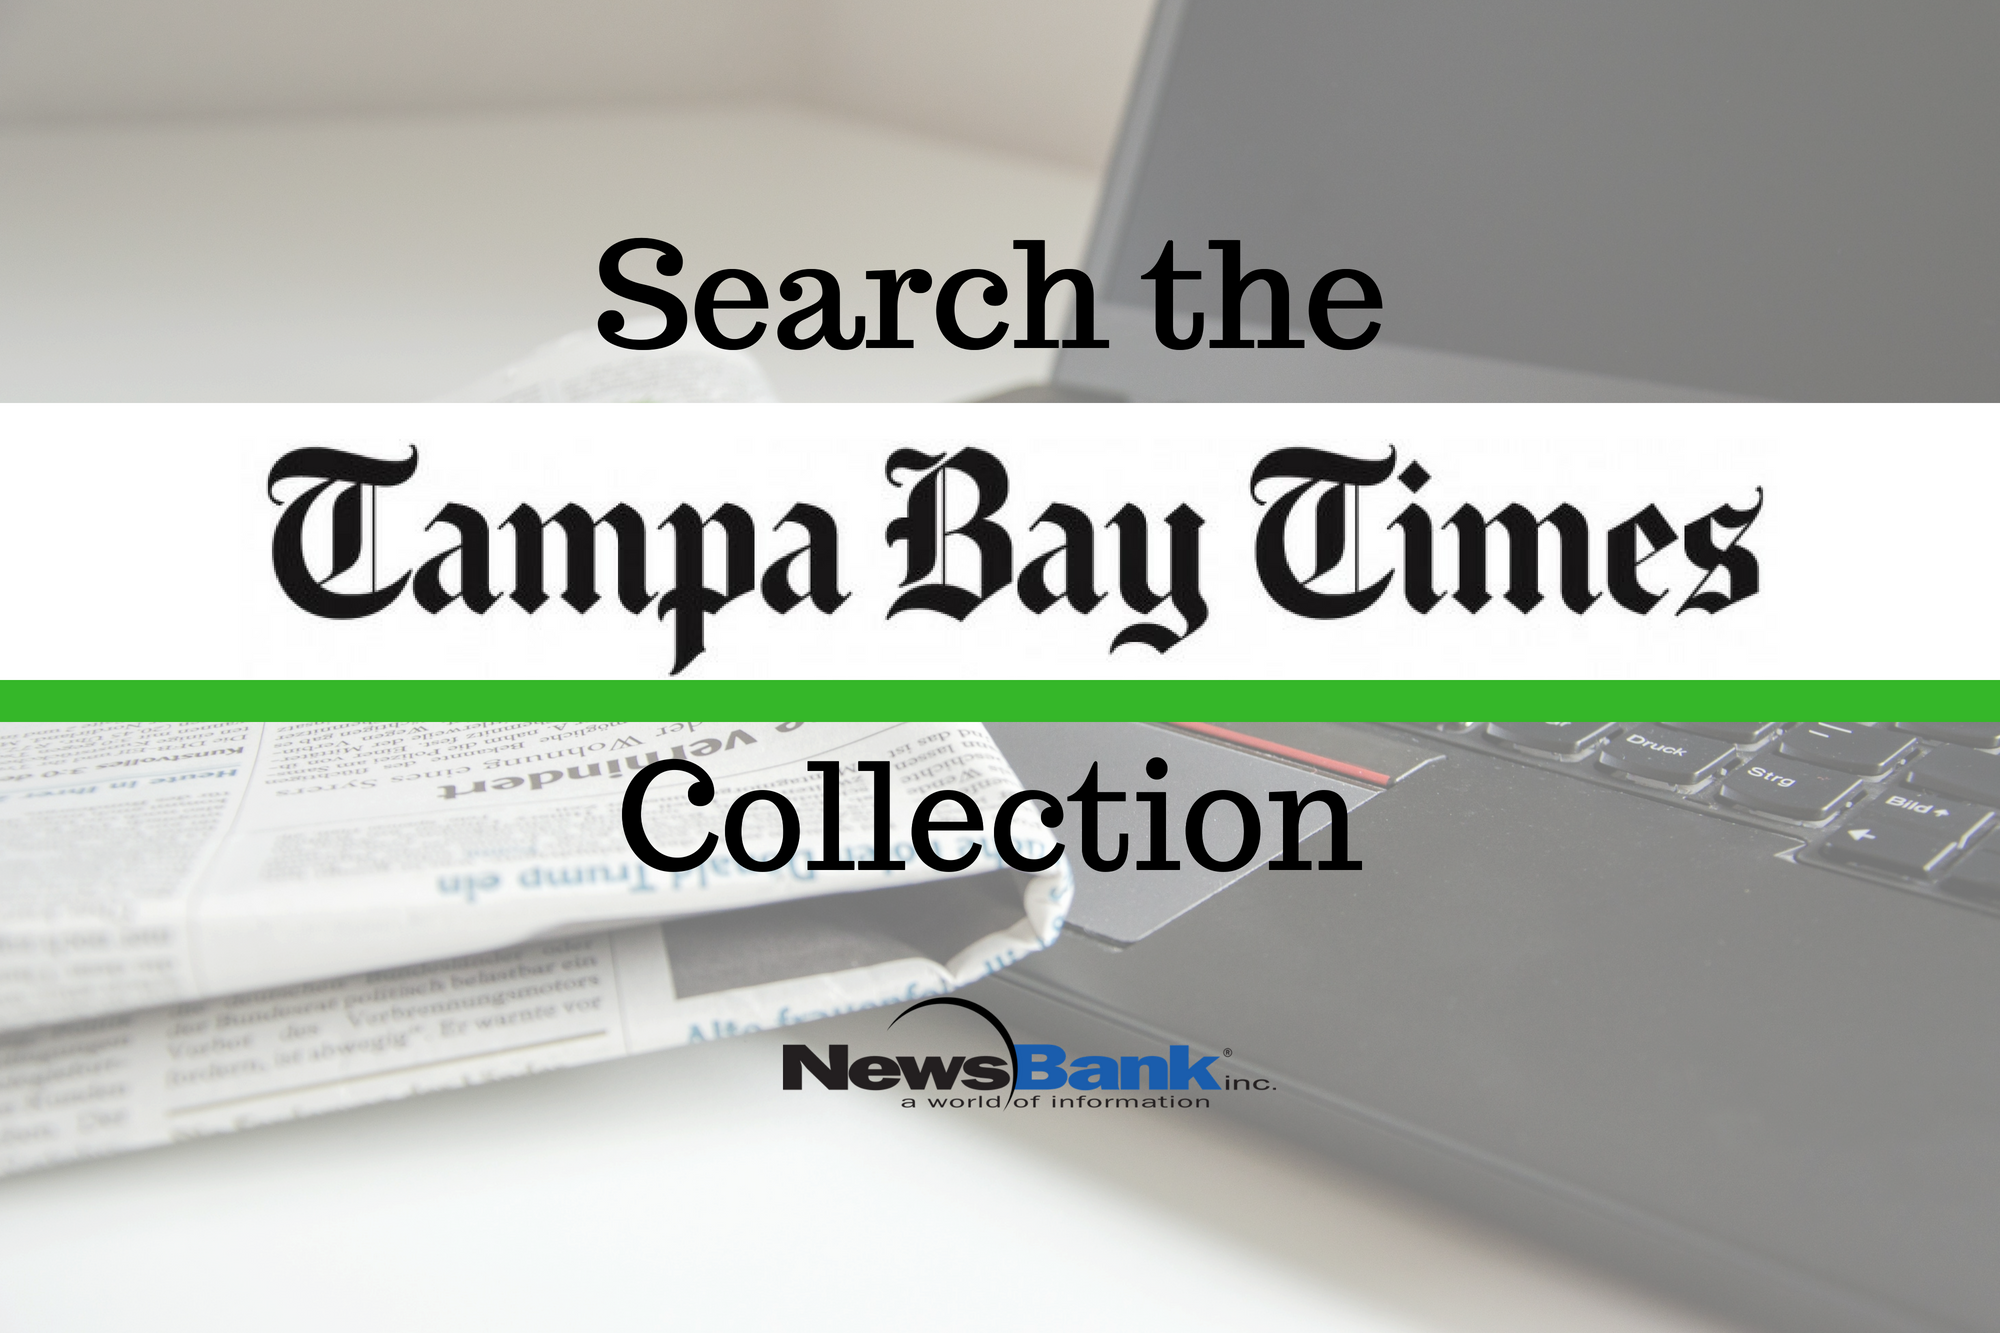 Tampa Bay Times Access